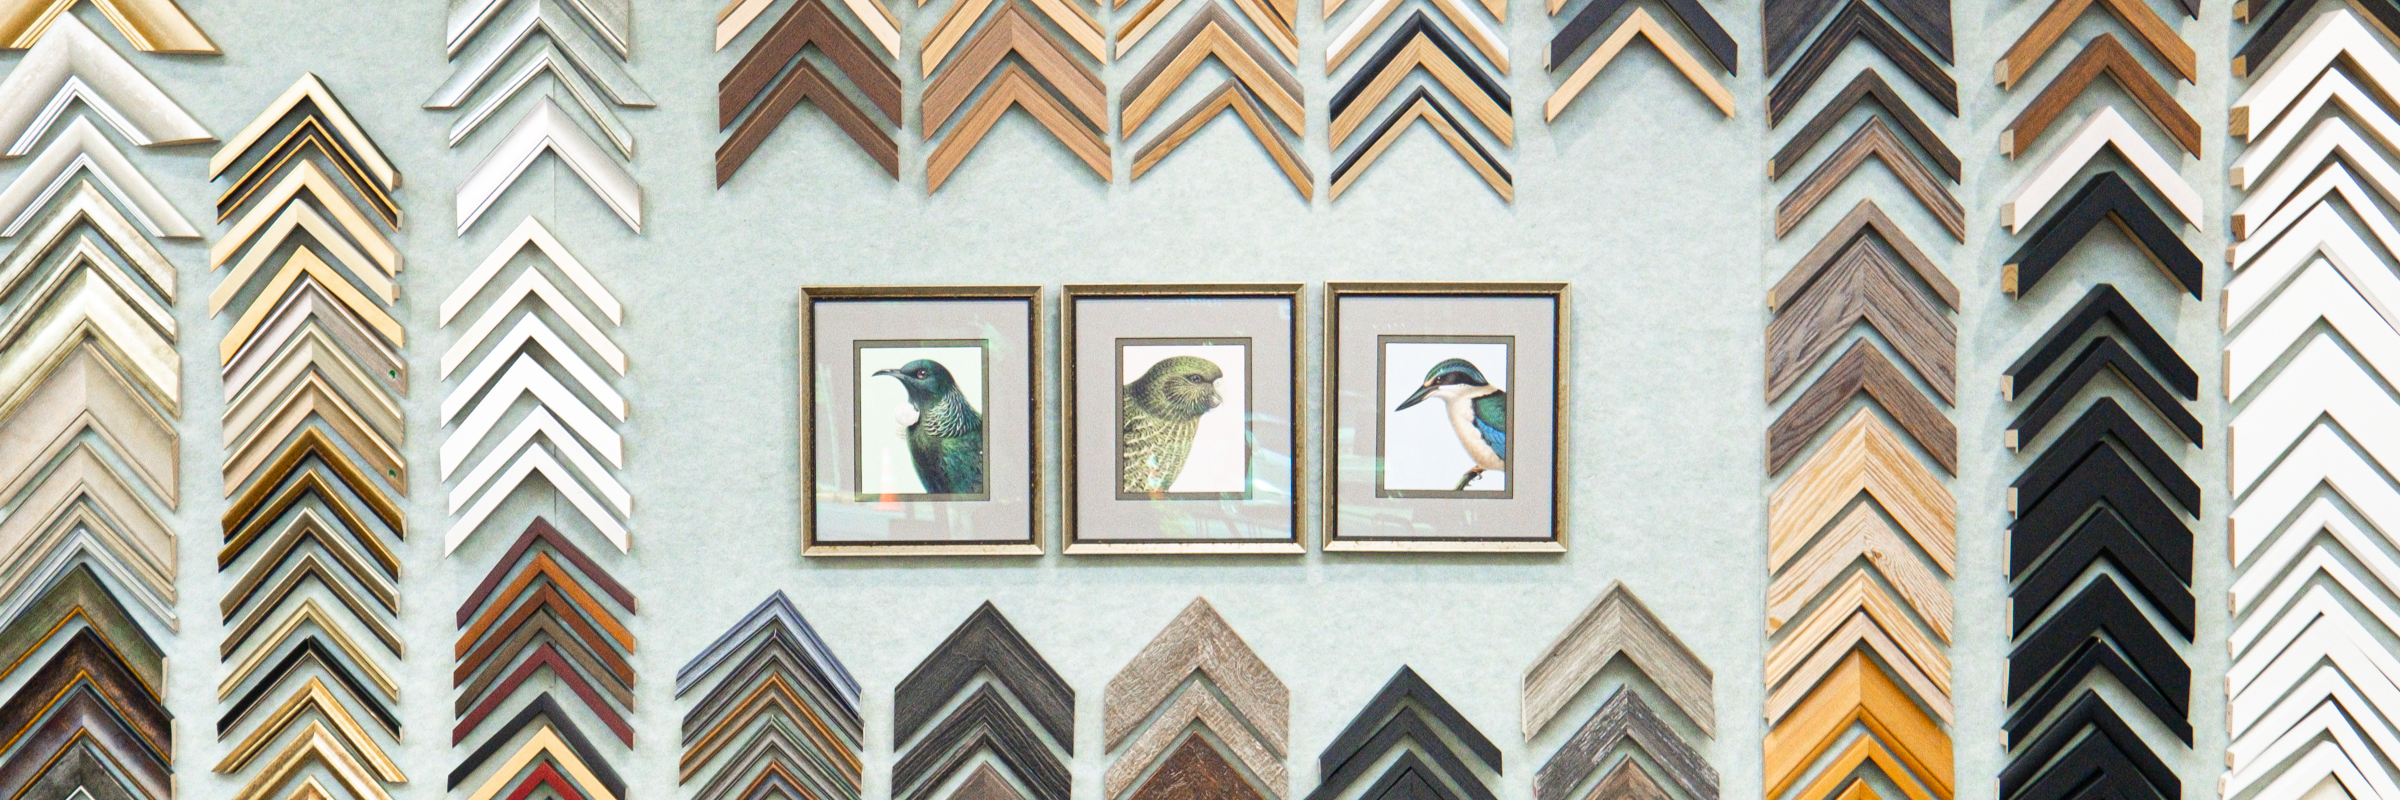 Picture Framers Rotorua - Portico Rotorua - Framing, Gifts, Photo Art & Restoration